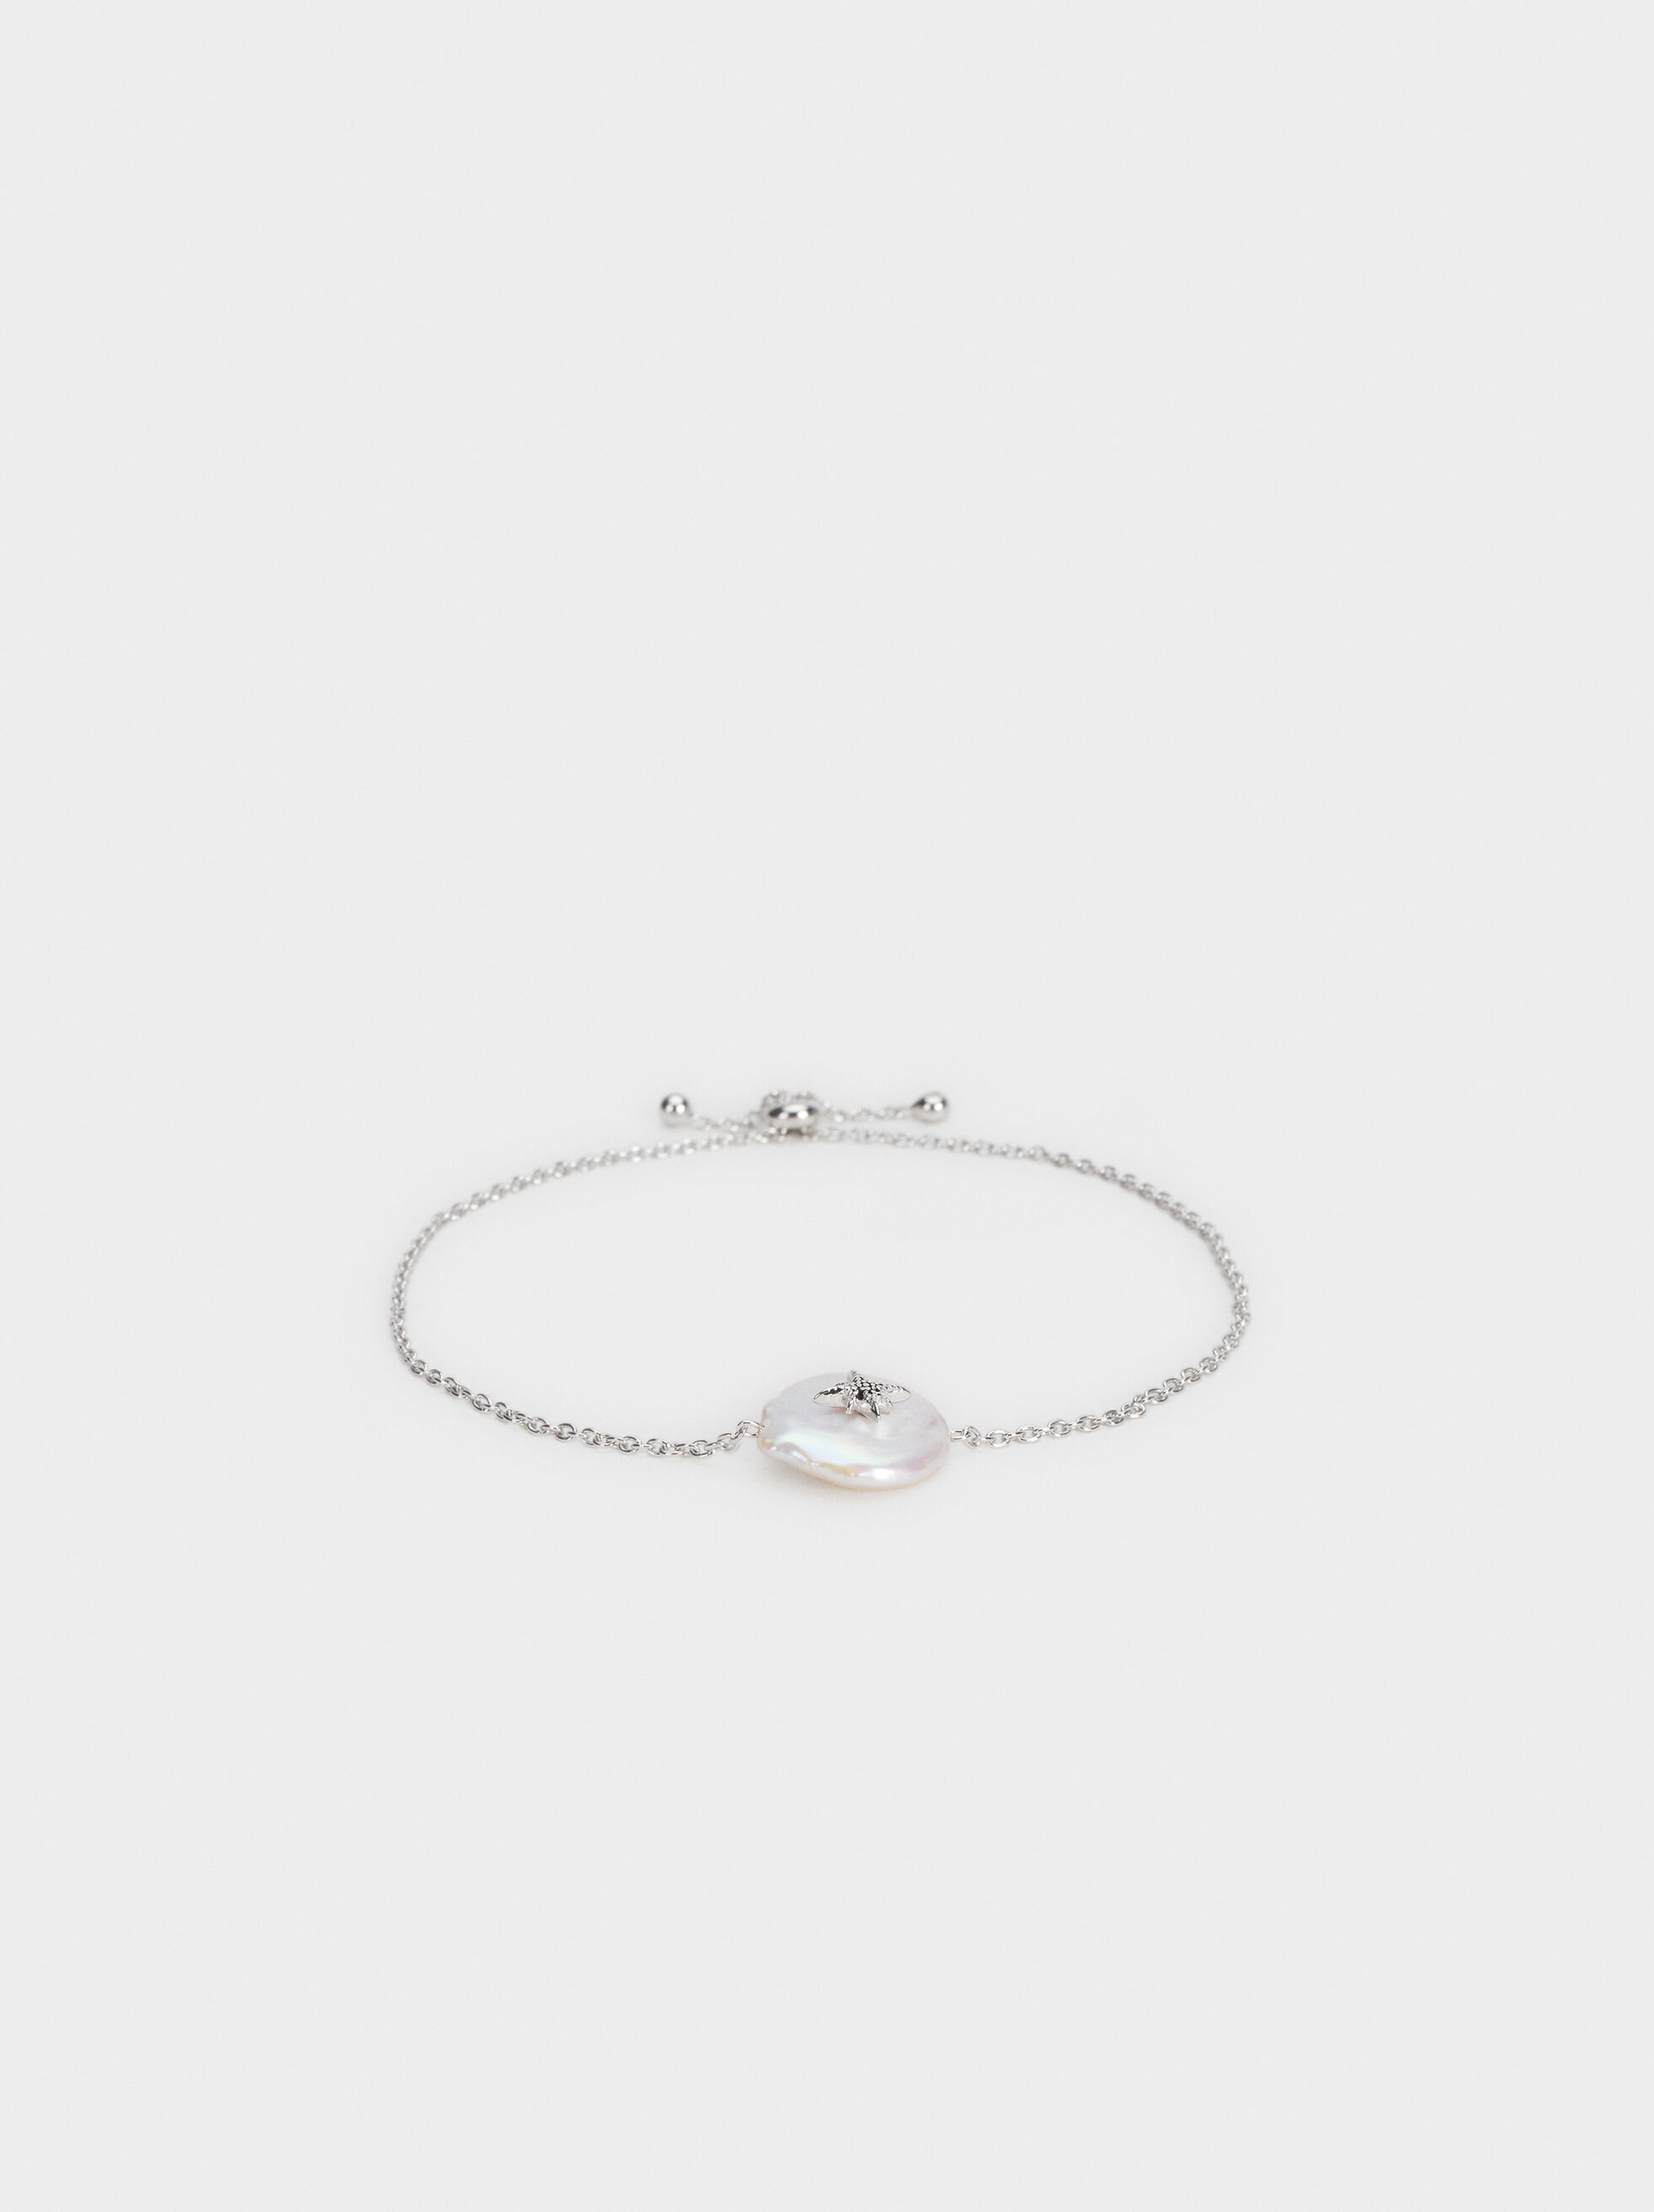 Adjustable 925 Silver Bracelet With Pendant, , hi-res